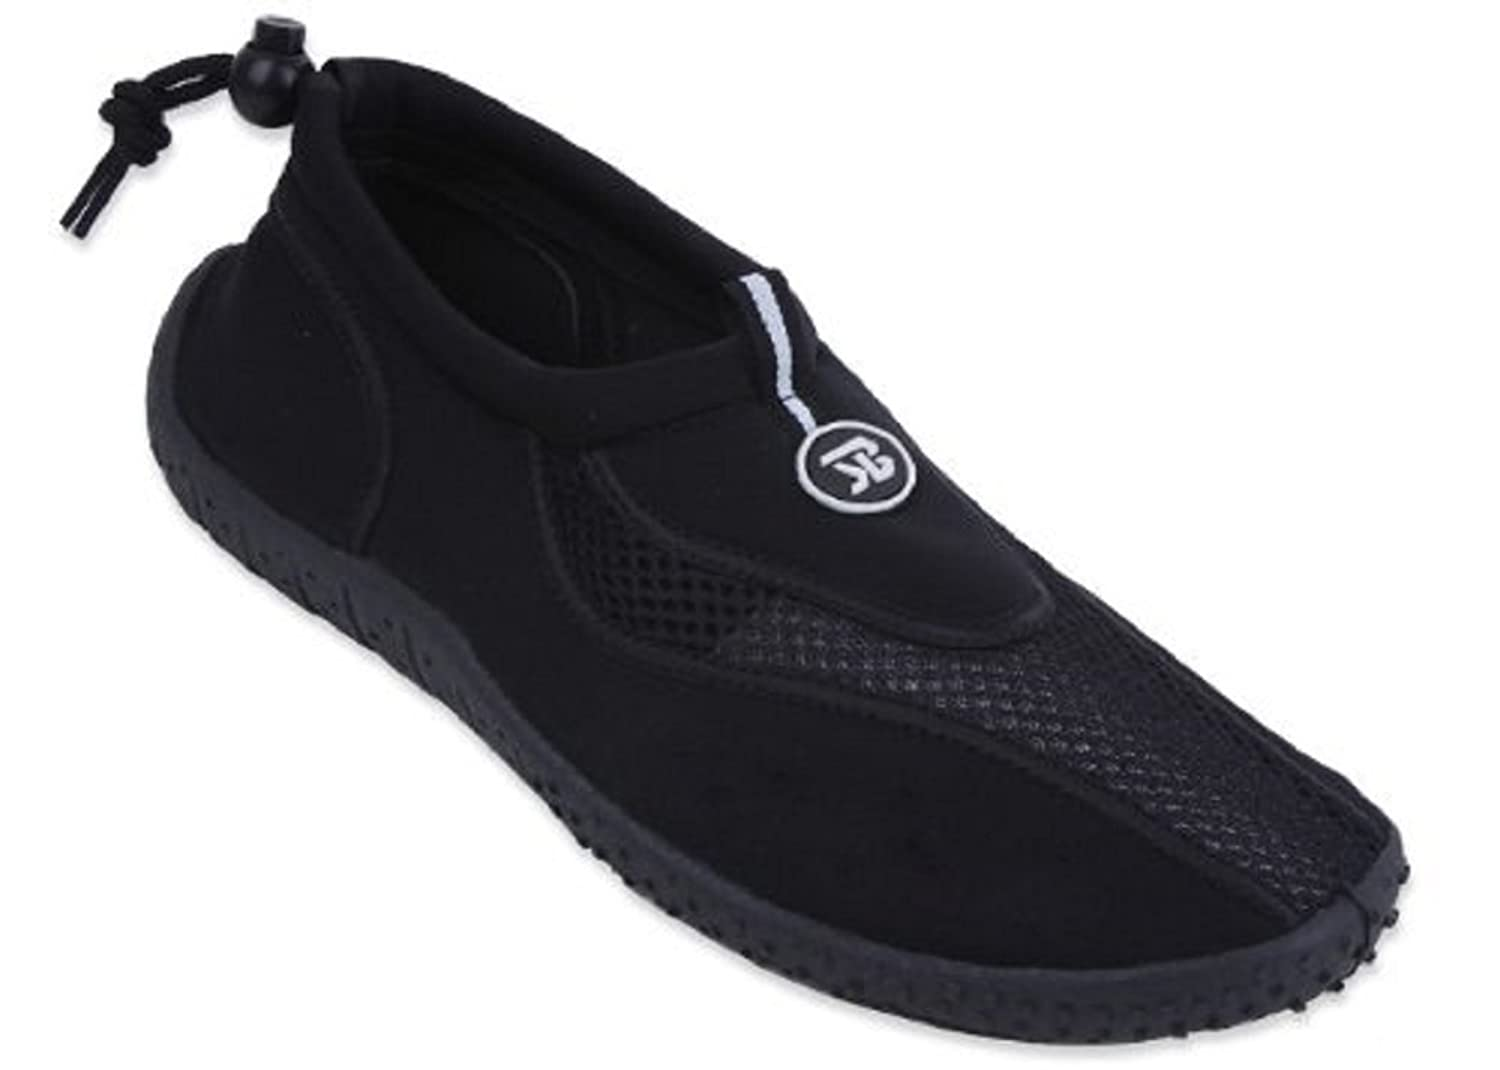 The Wave New Mens Slip on Water Pool Beach Shoes Aqua Socks 5 Colors Available 9, 5907Black